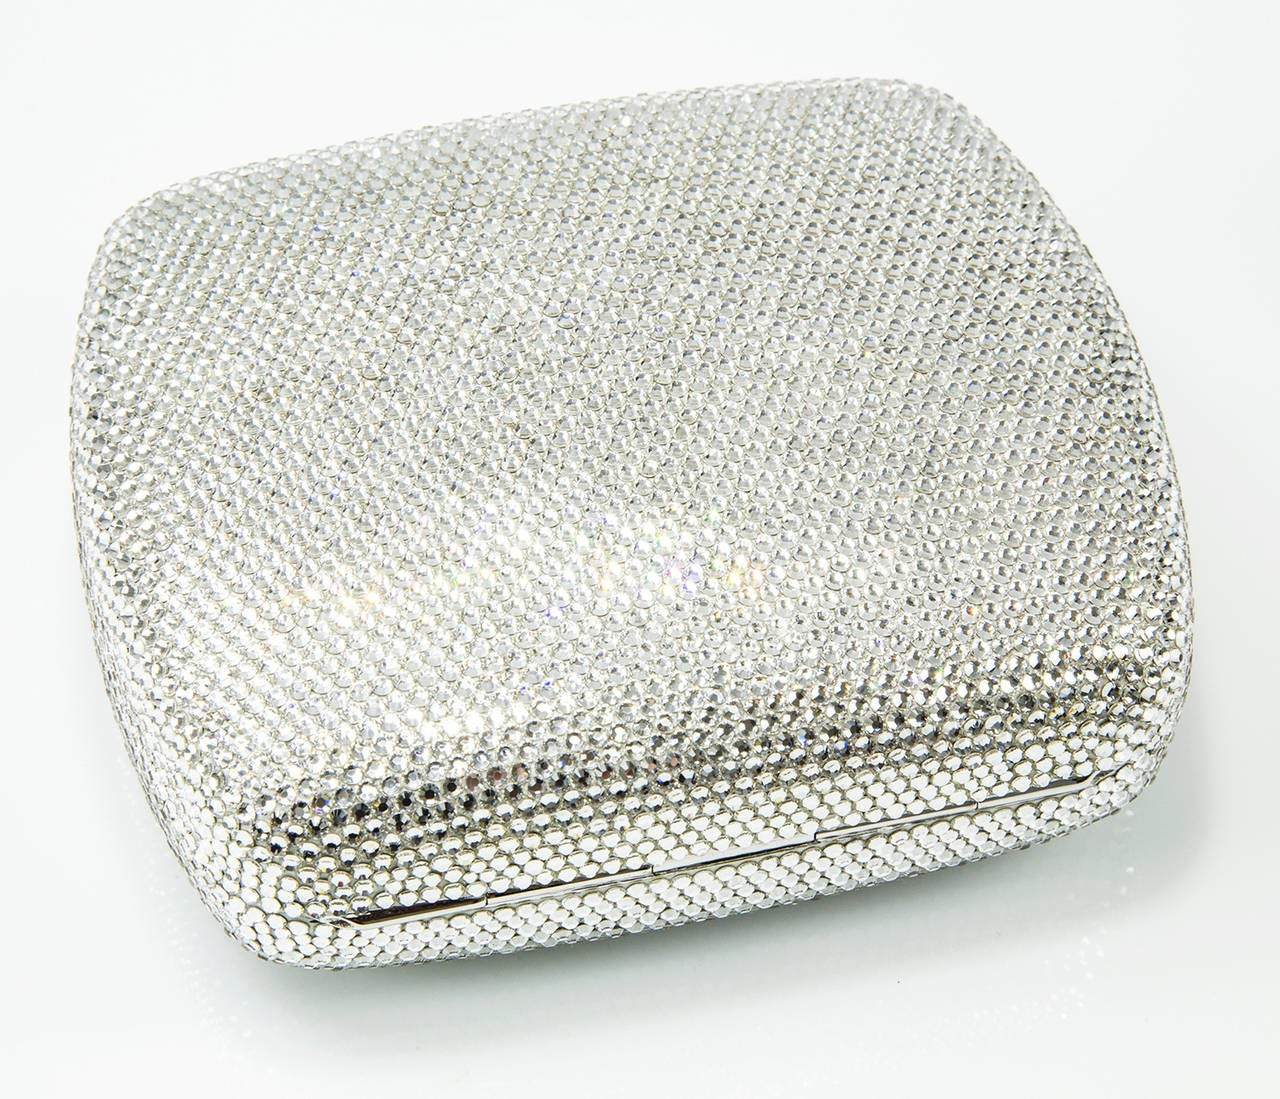 Judith Leiber Swarovski Crystals Zodiac Minaudière Brand New UnUsed Handbag In New Condition For Sale In Montreal, QC